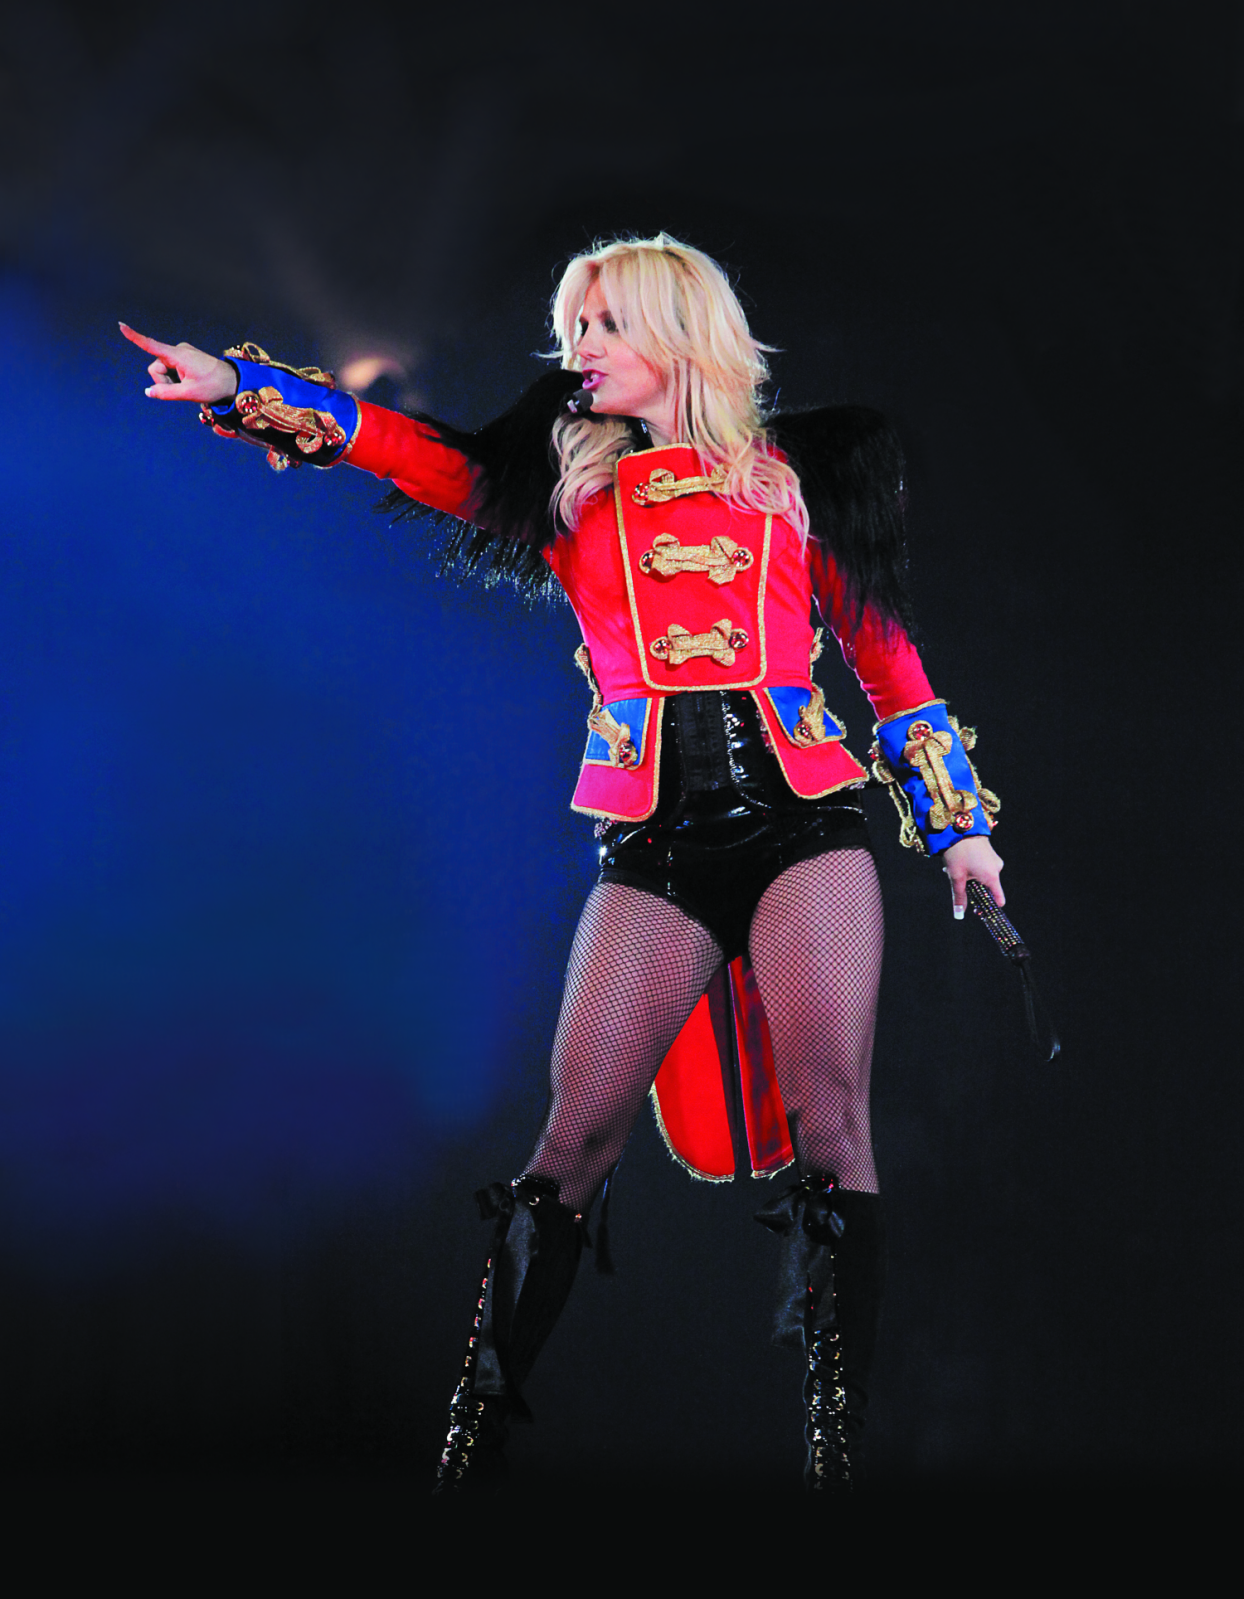 Britney-Spears-Circus-Ringmaster-Halloween-Costume-Idea-OnGiselleAve  sc 1 st  Giselle Ave. & 5 Halloween Costume Ideas You Already Have in Your Closet u2013 Giselle Ave.